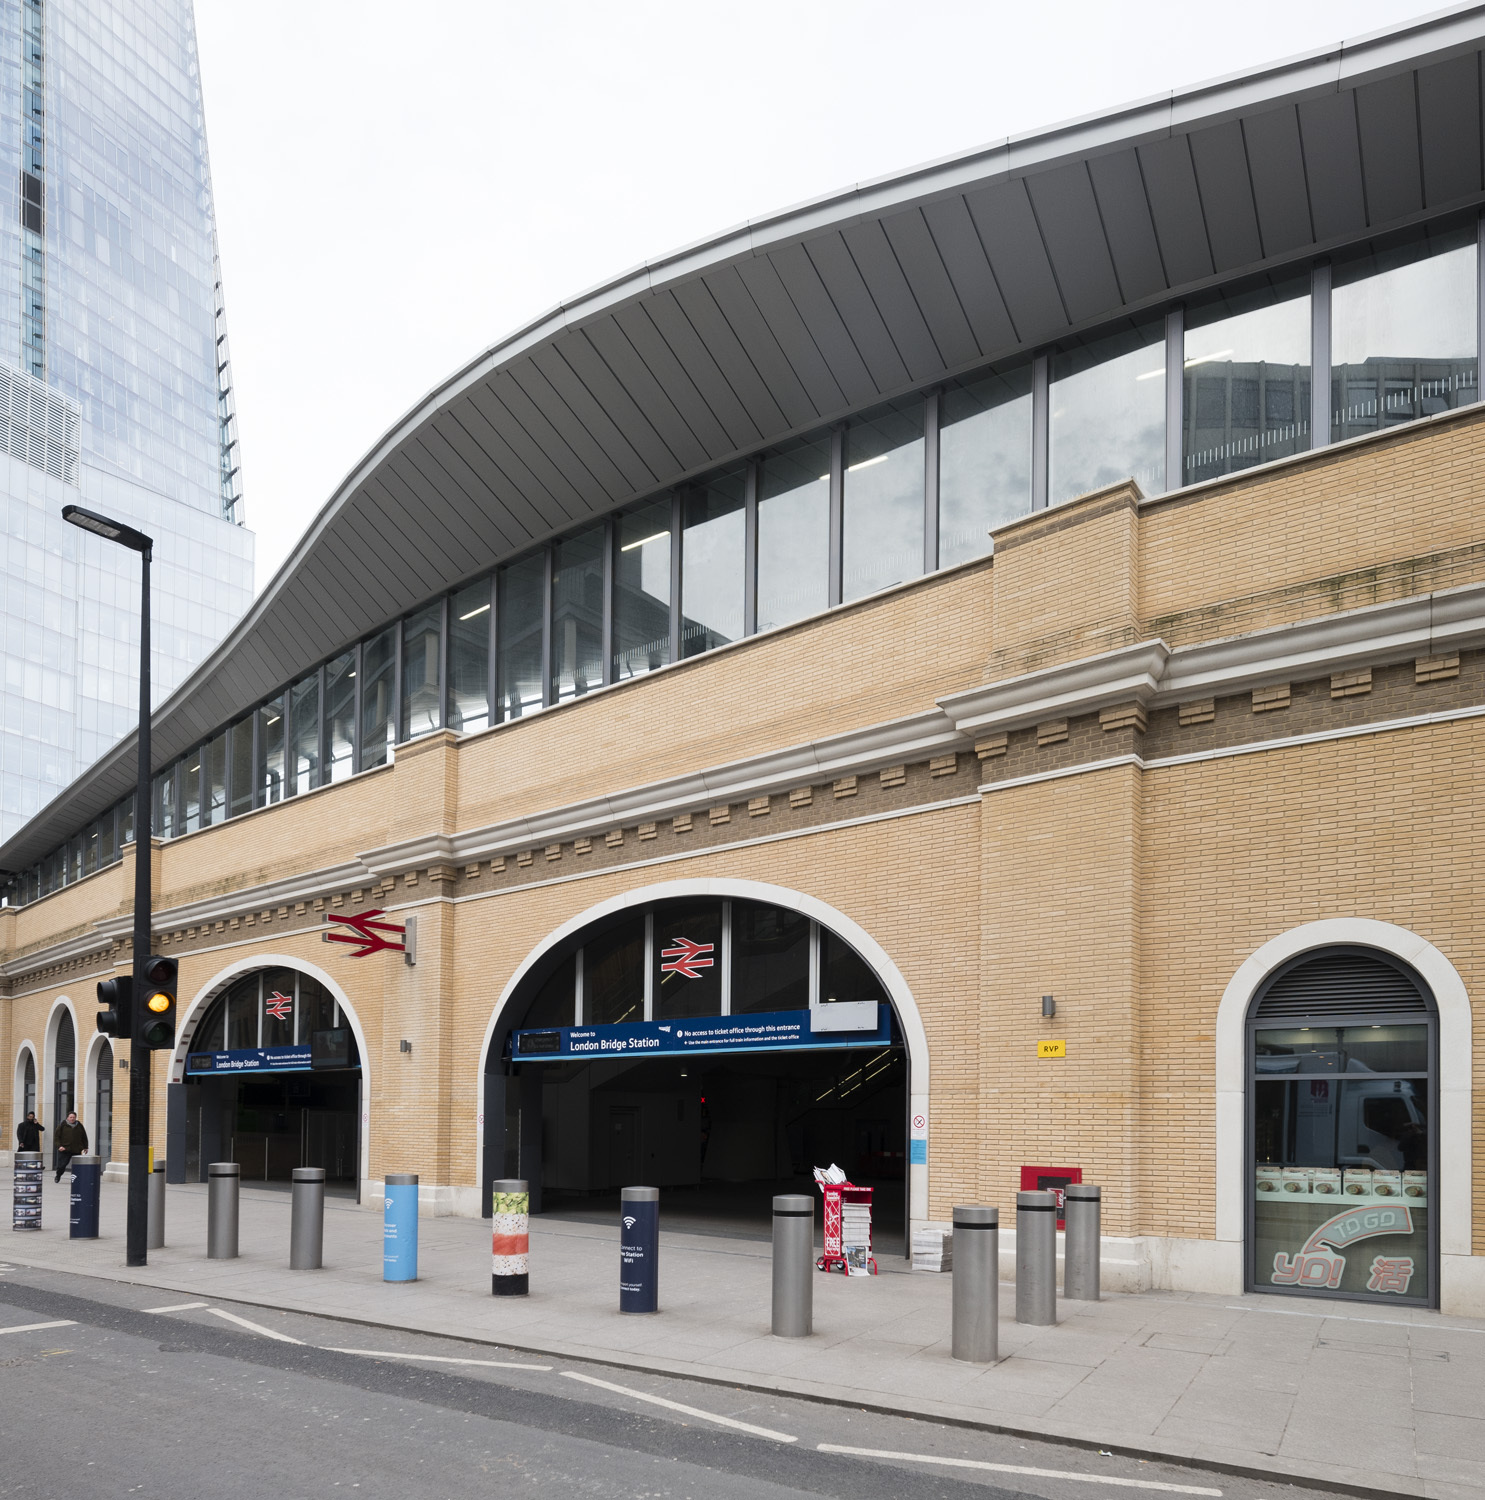 London Bridge Station